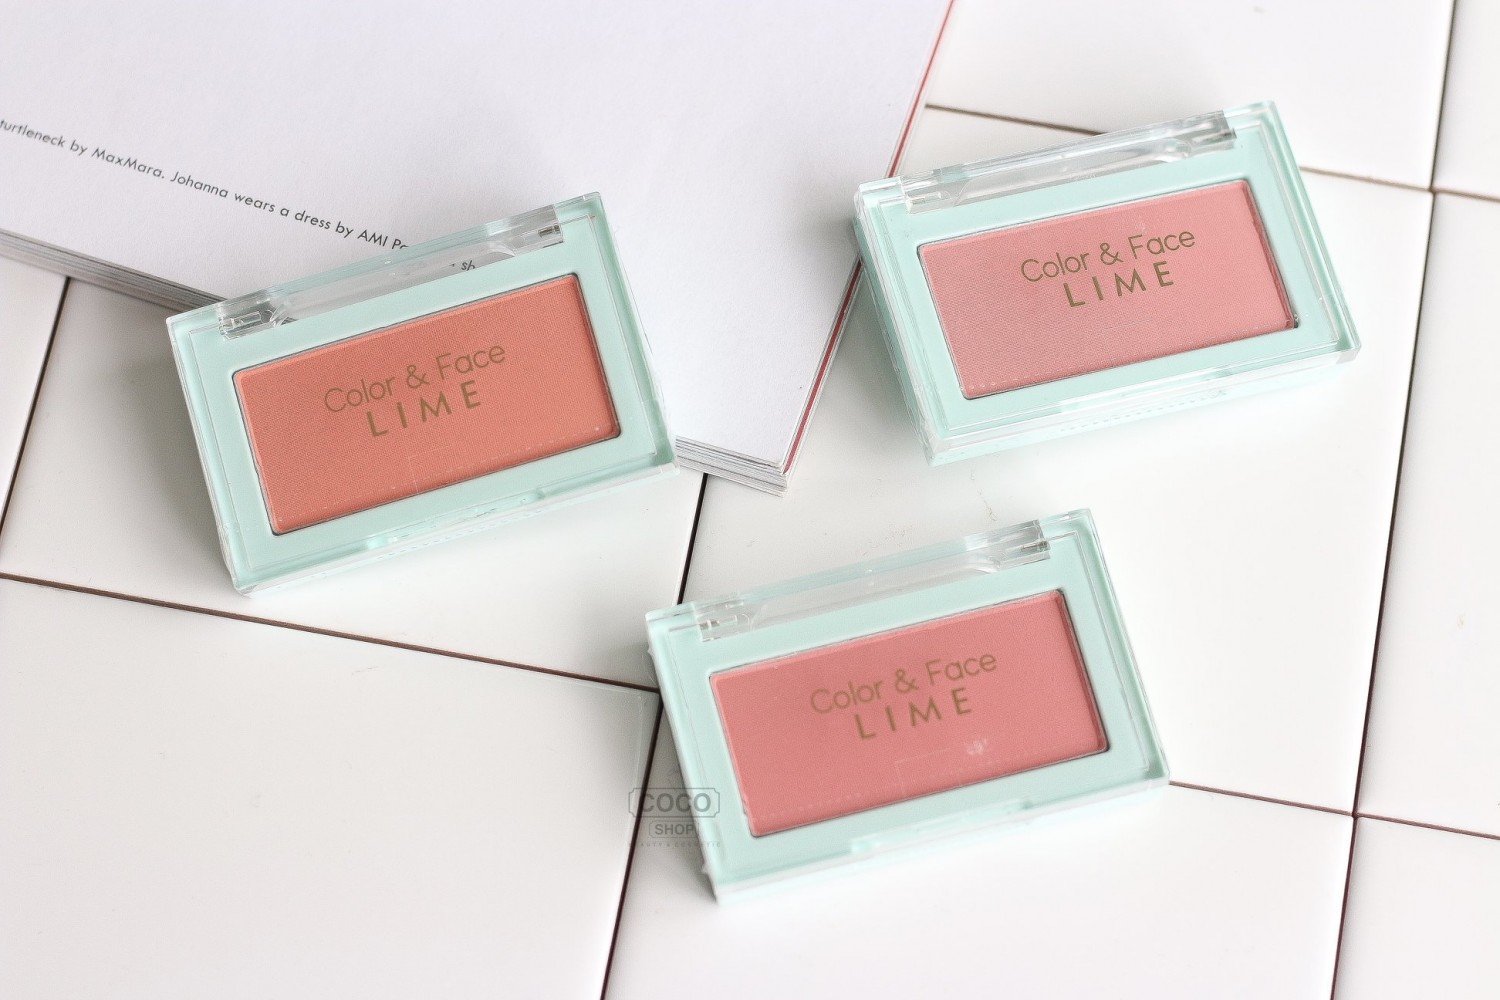 phan ma hong lime color and face single blusher 4